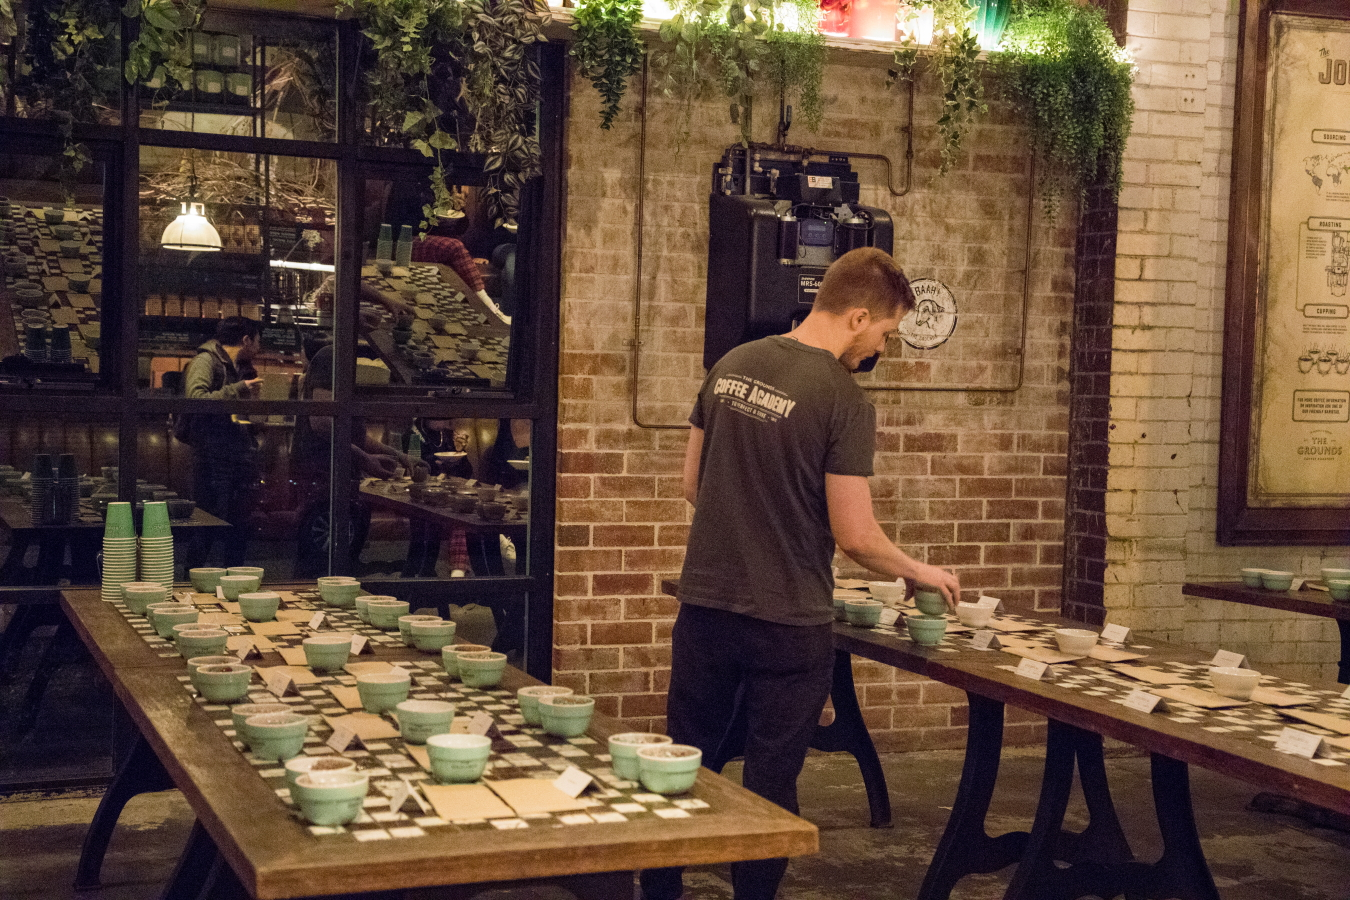 grounds cupping15byo.JPG